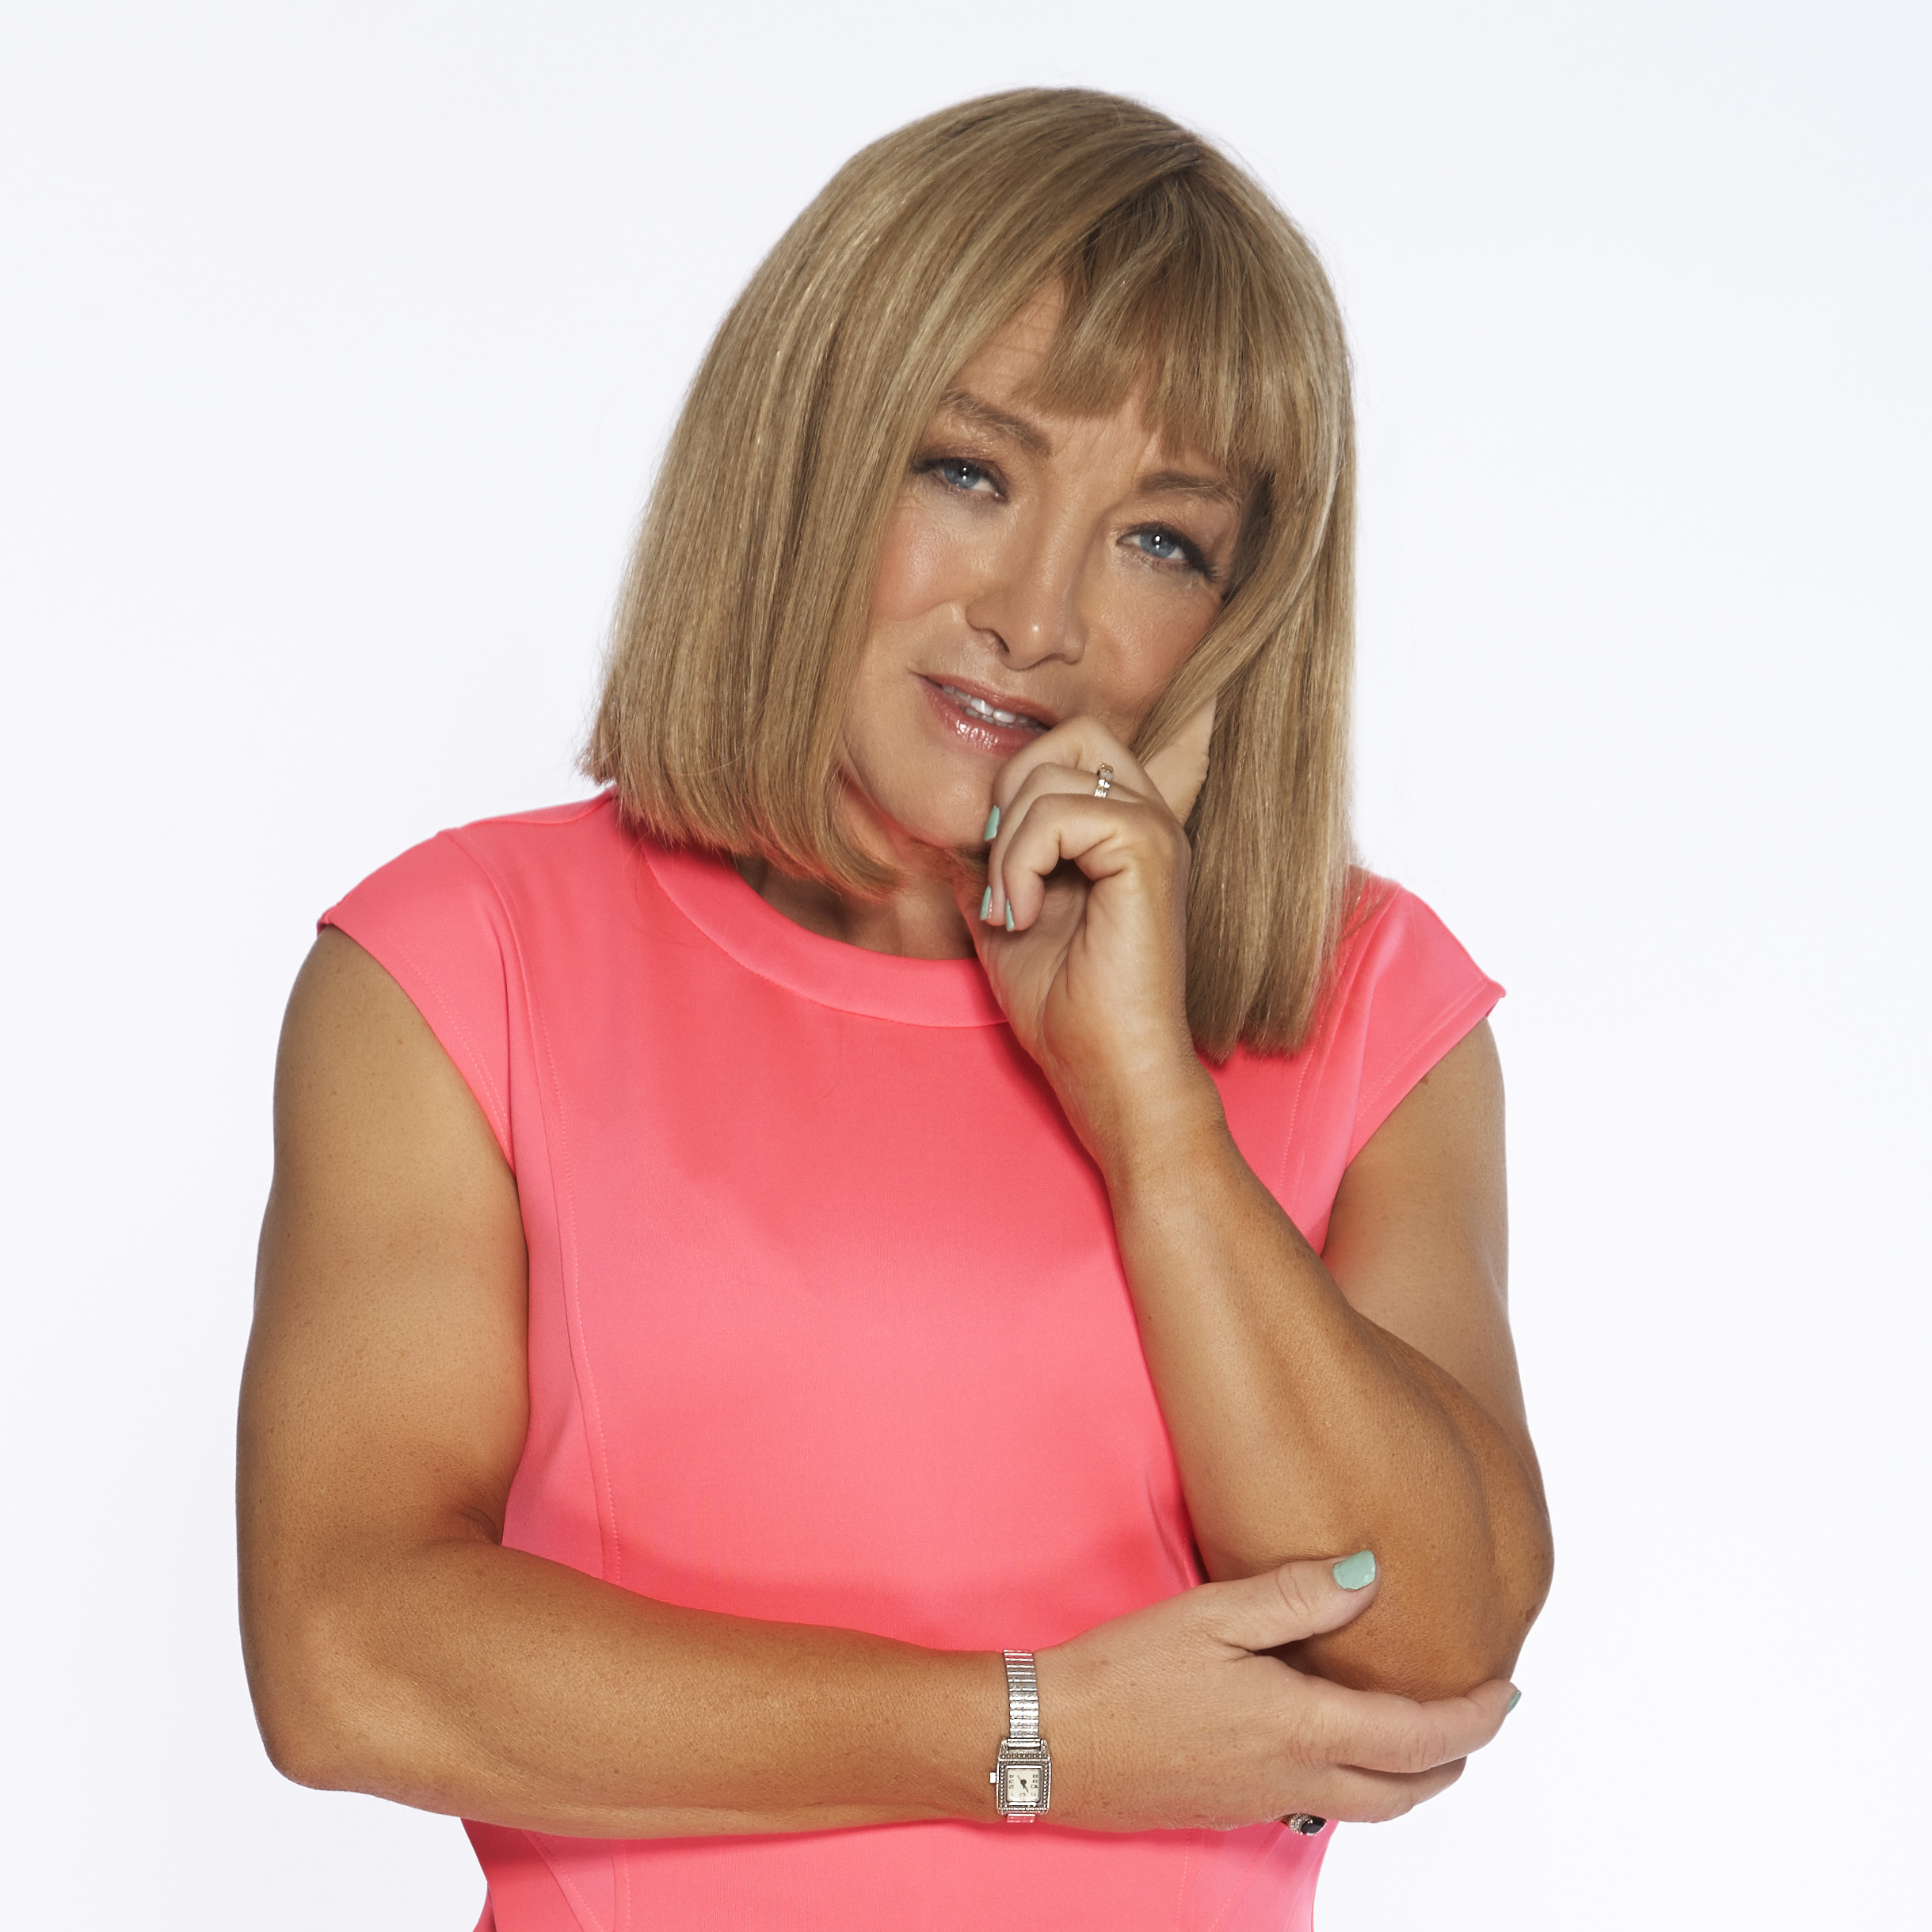 An image of Kellie Maloney